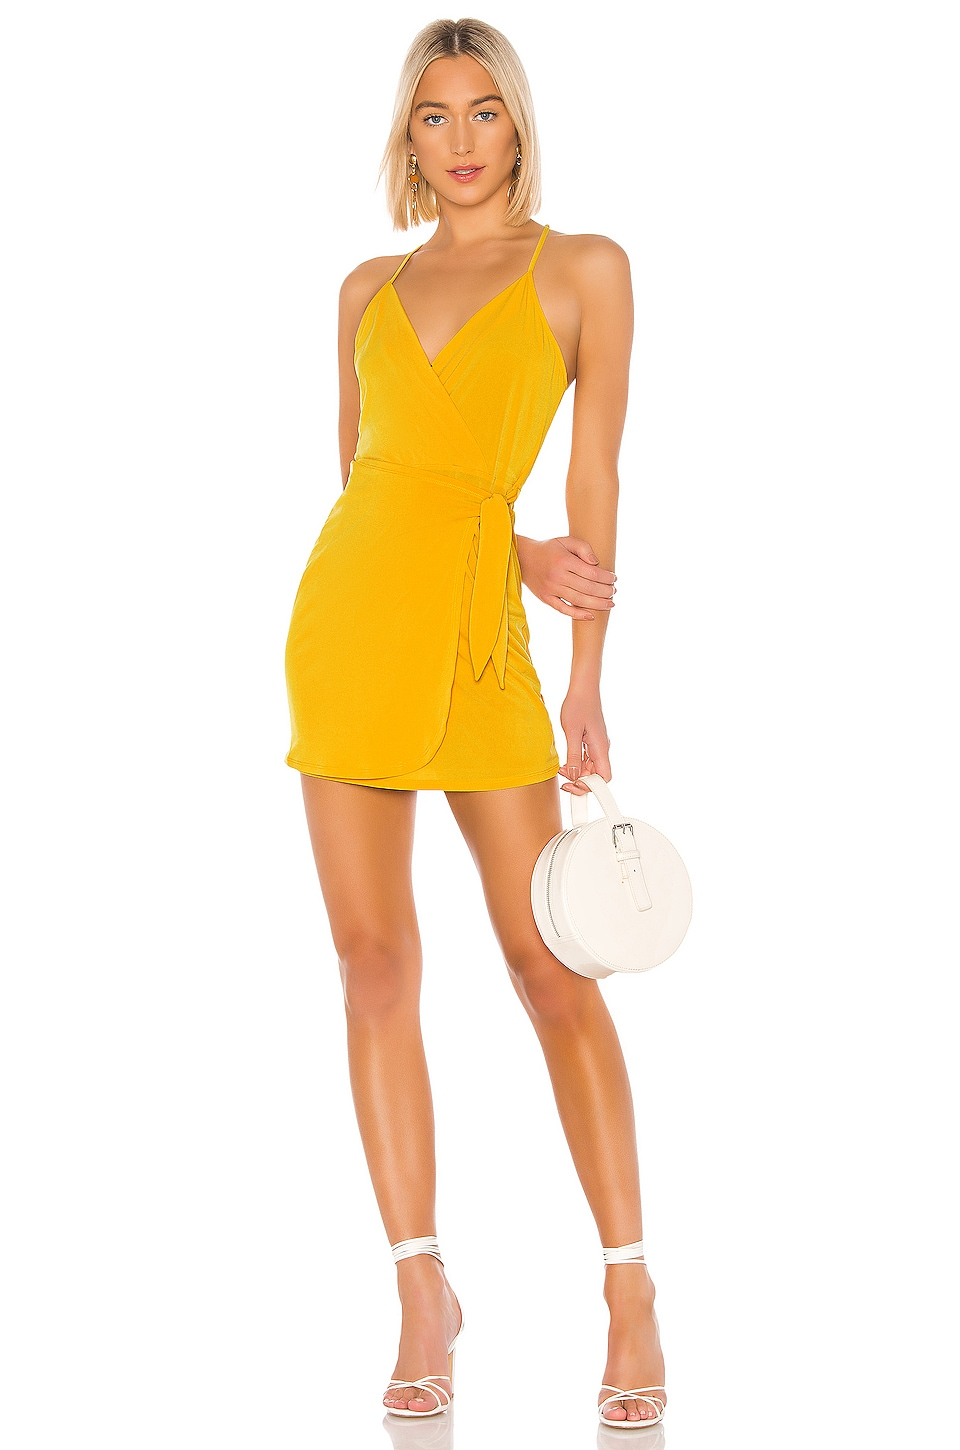 Wrap Front Dress             BCBGeneration                                                                                                                                         Sale price:                                                                       CA$ 45.21                                                                                                  Previous price:                                                                       CA$ 90.42 2